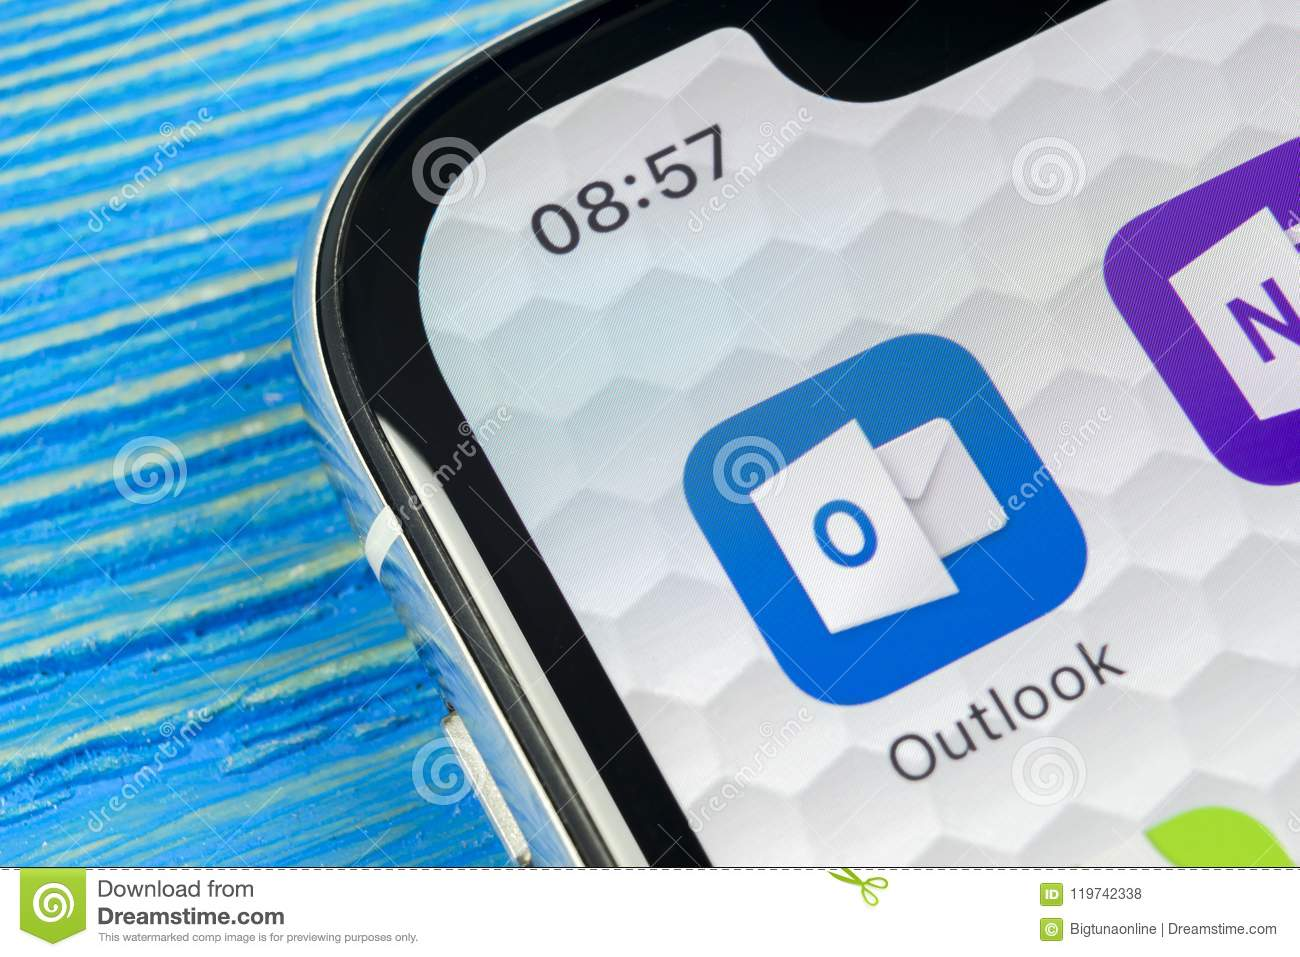 Microsoft Outlook Office Application Icon On Apple IPhone X